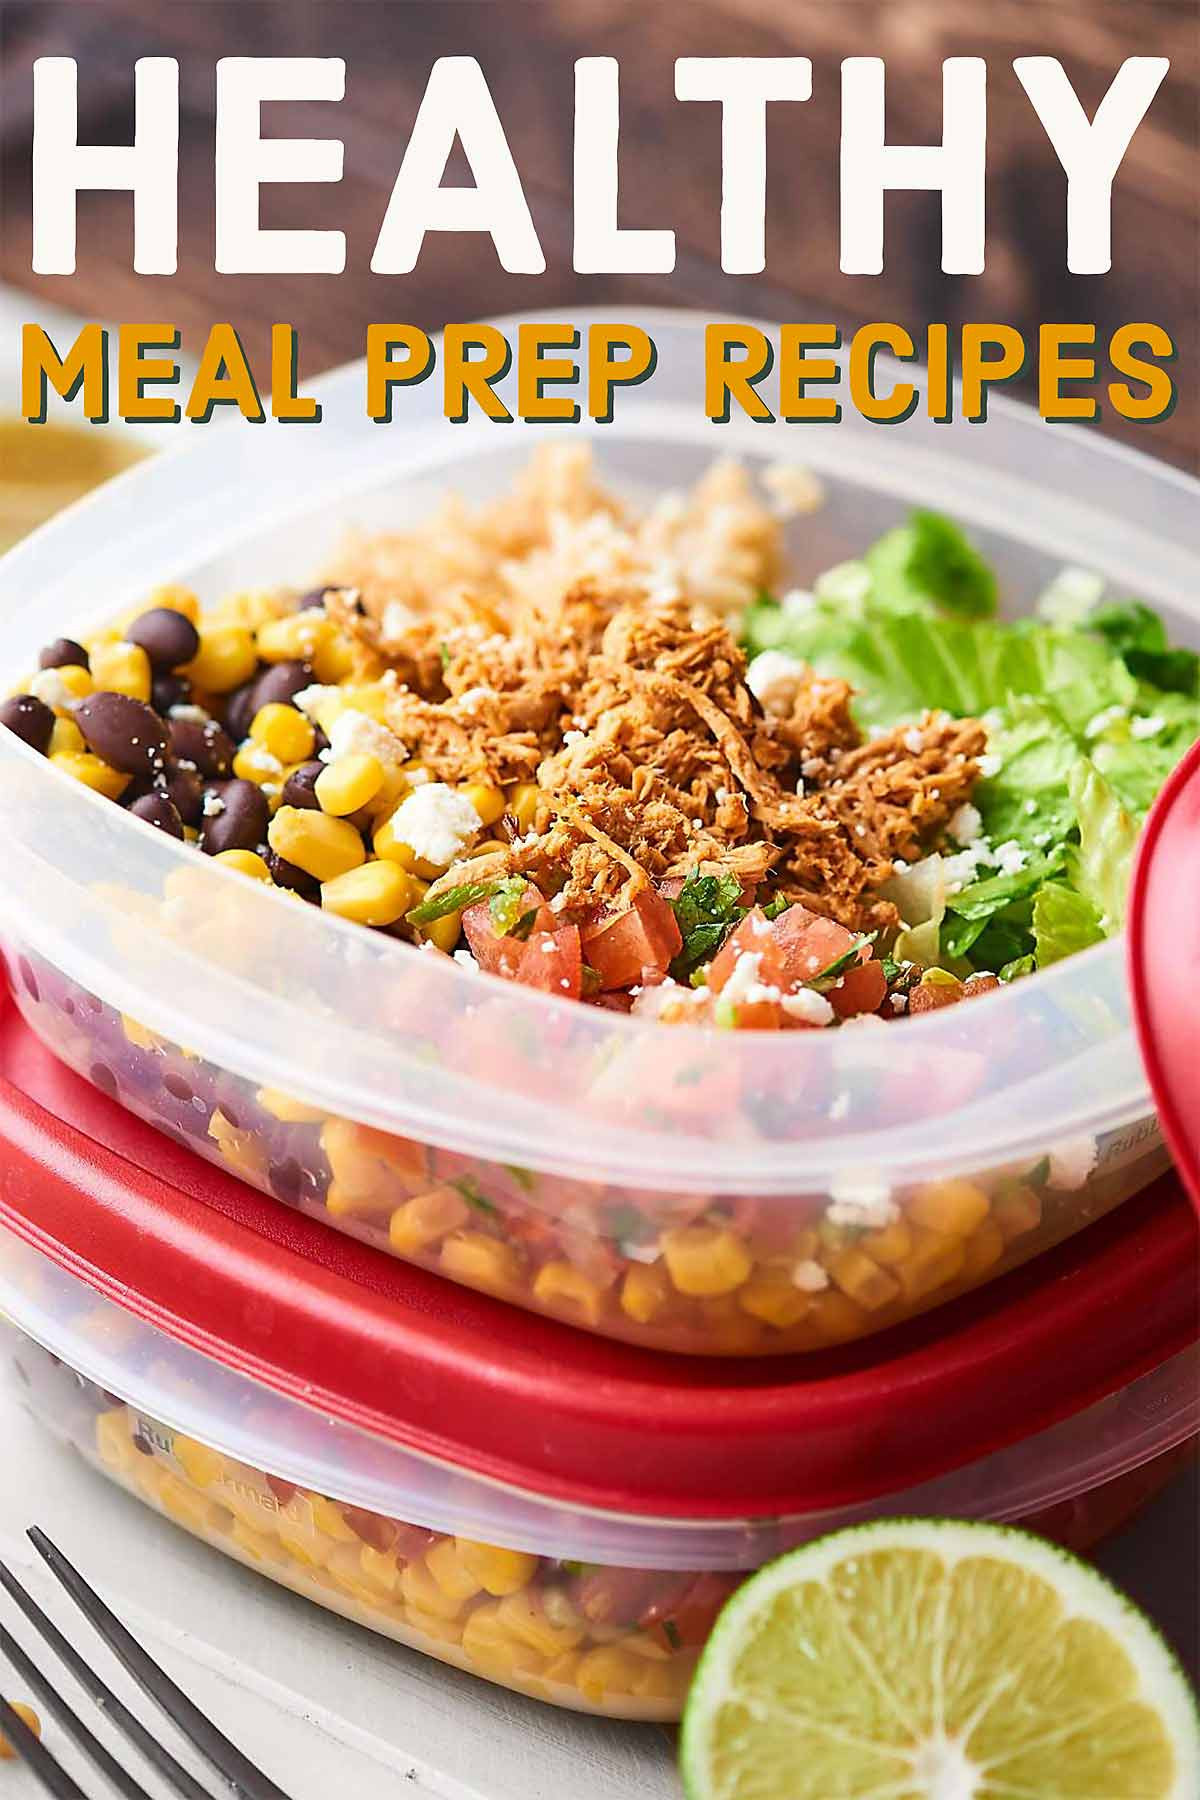 Healthy Lunch And Dinner Ideas  Healthy Meal Prep Recipes 2018 Quick Easy Healthy